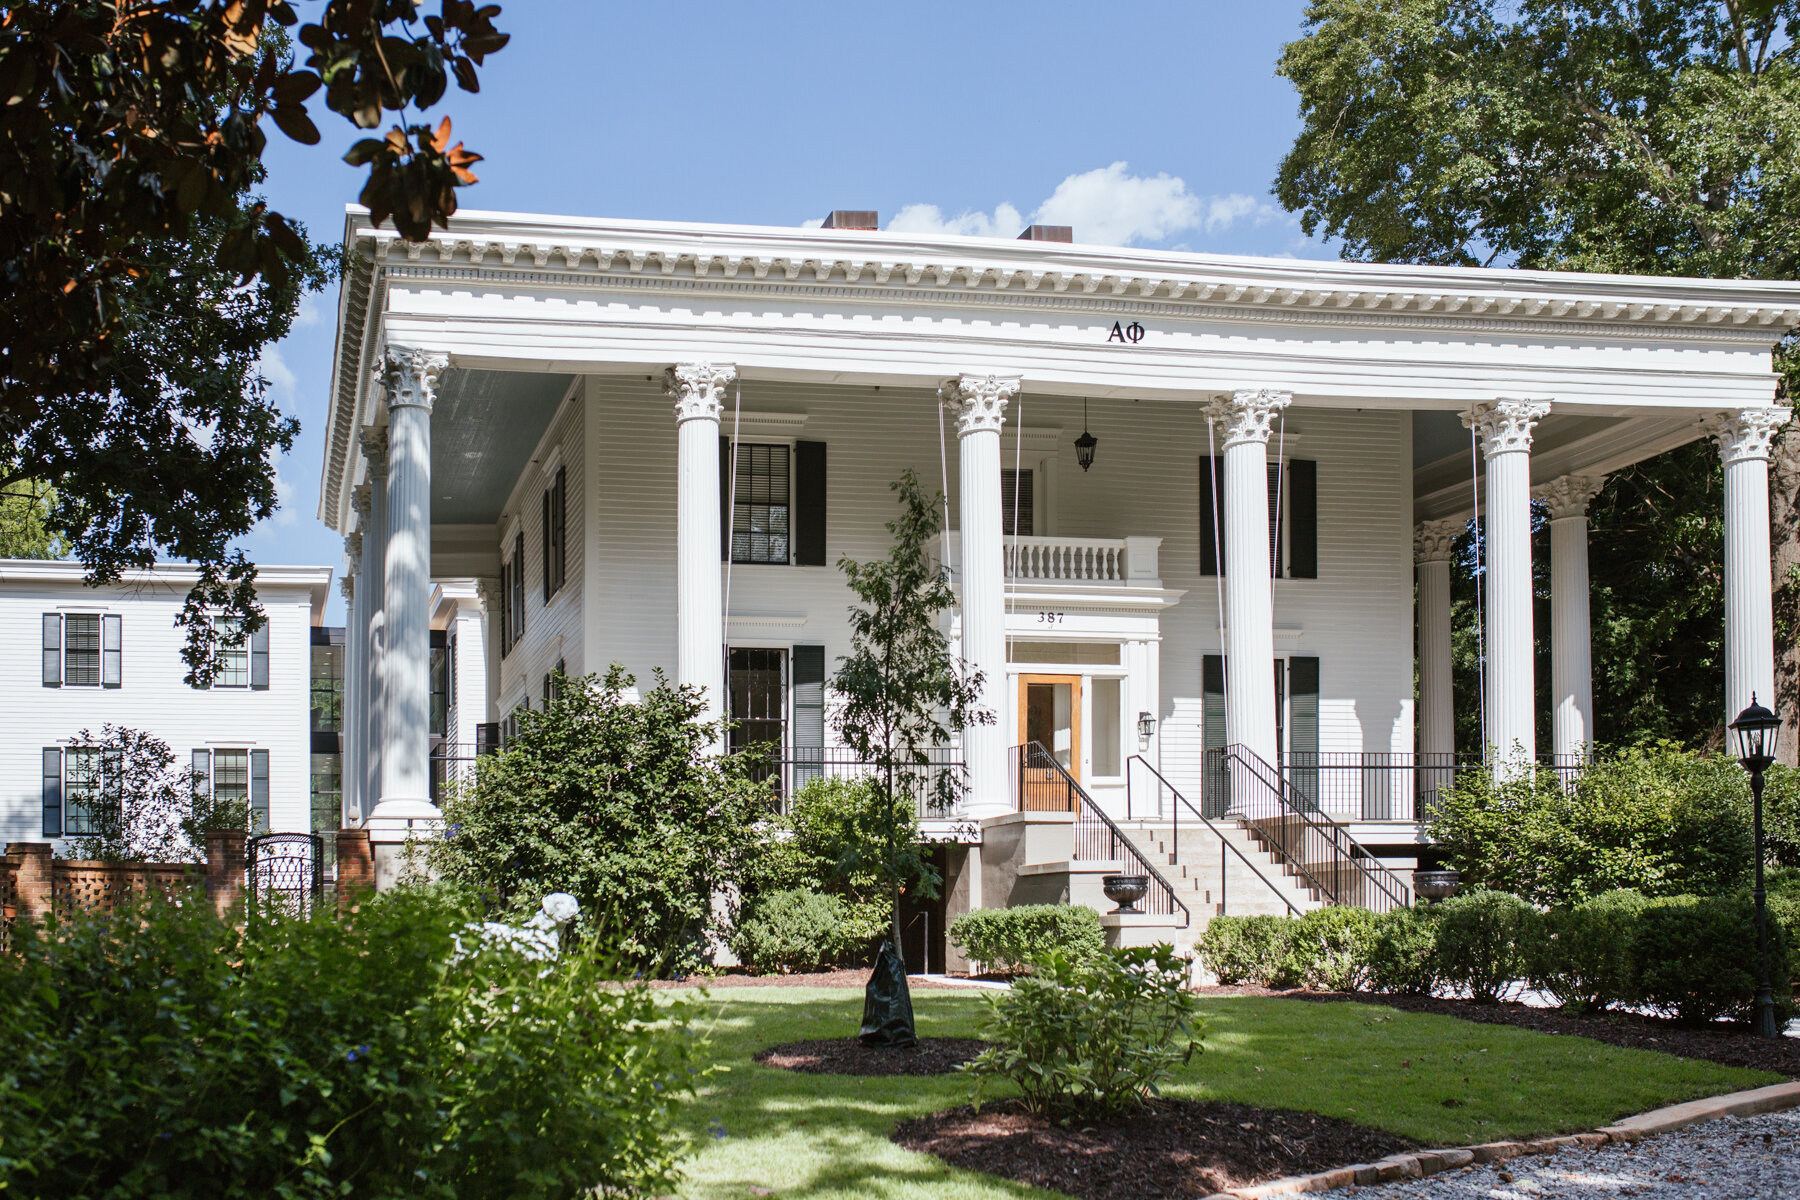 Southern Living - This Historic Home Was Just Given New Life as a Sorority House—You Have To See the Transformation